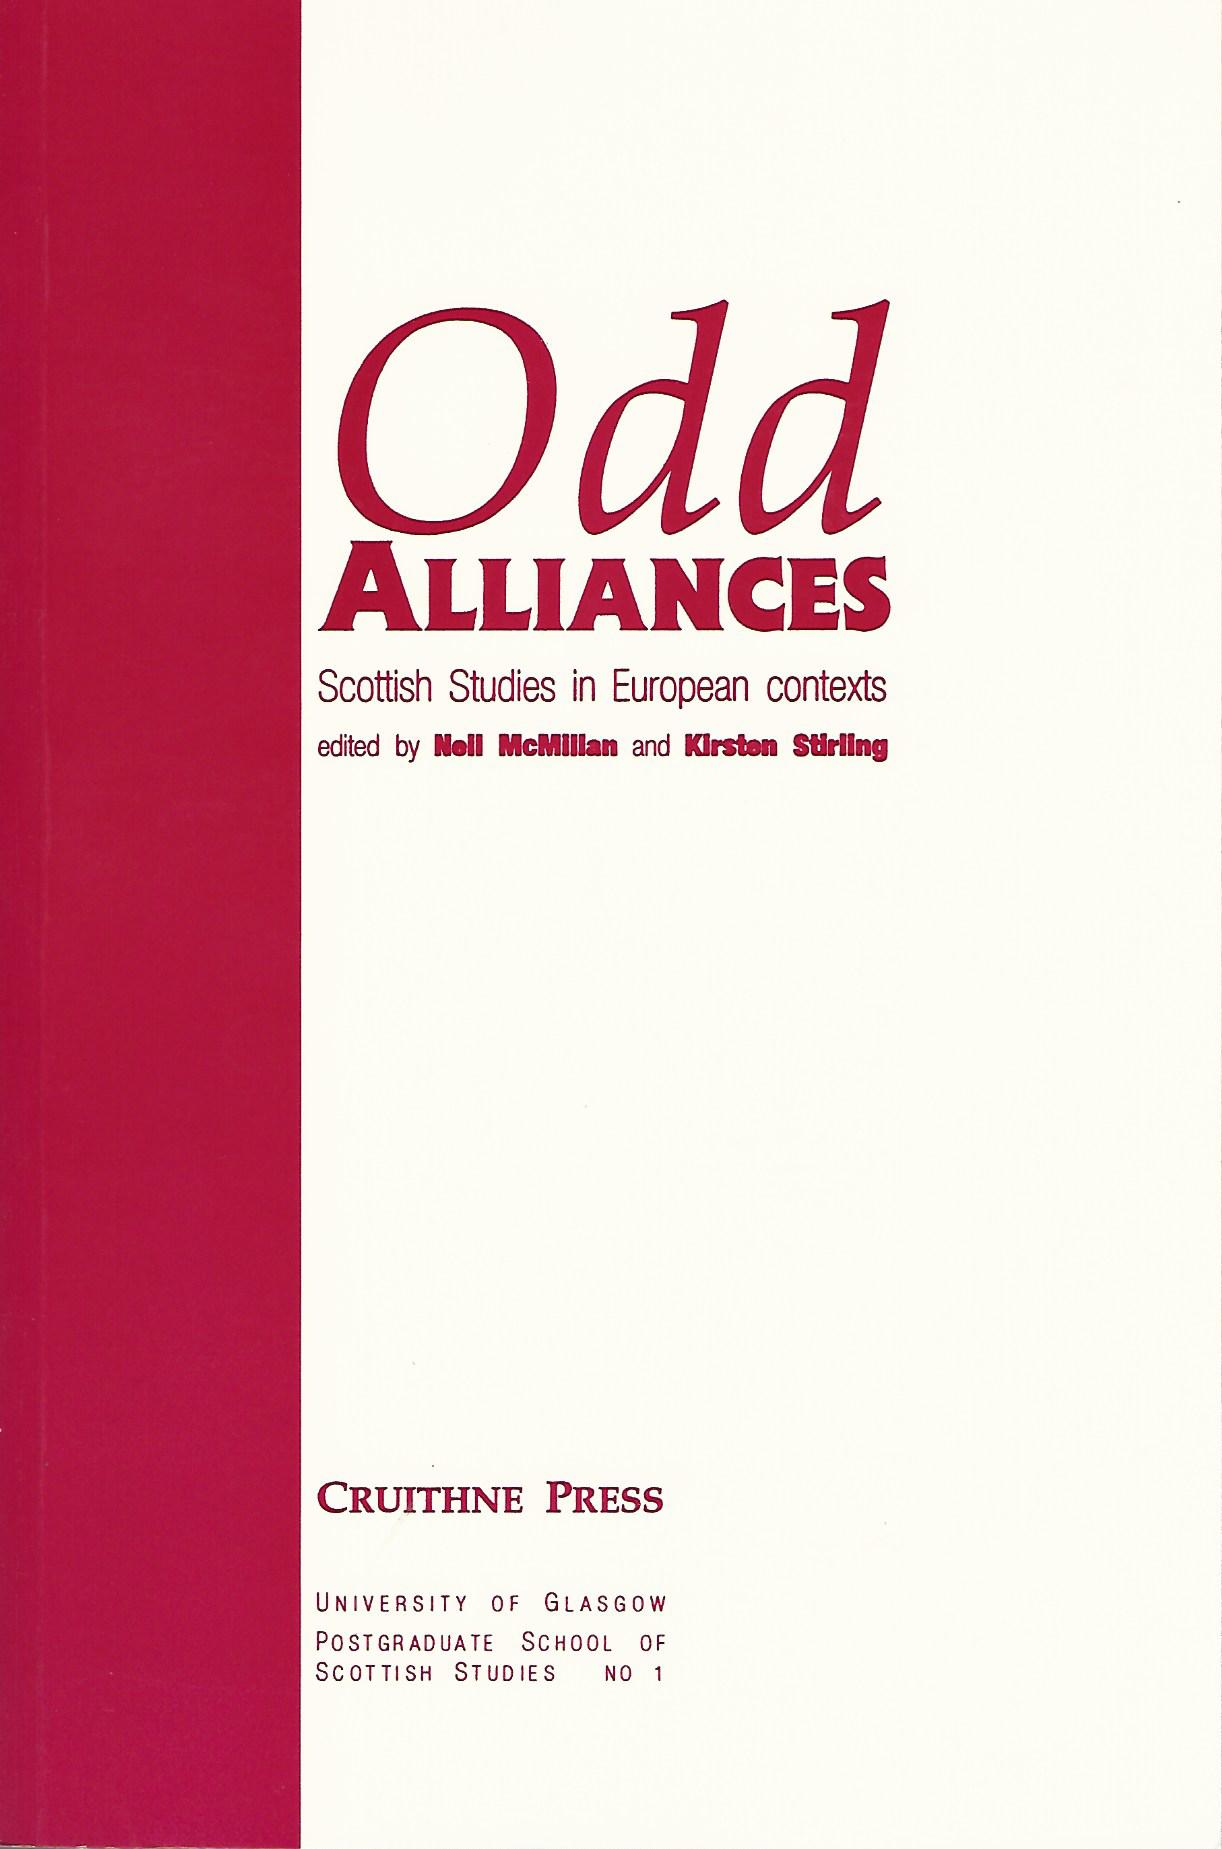 Image for Odd Alliances: Scottish Studies in European Contexts (University of Glasgow Postgraduate School of Scottish Studies)